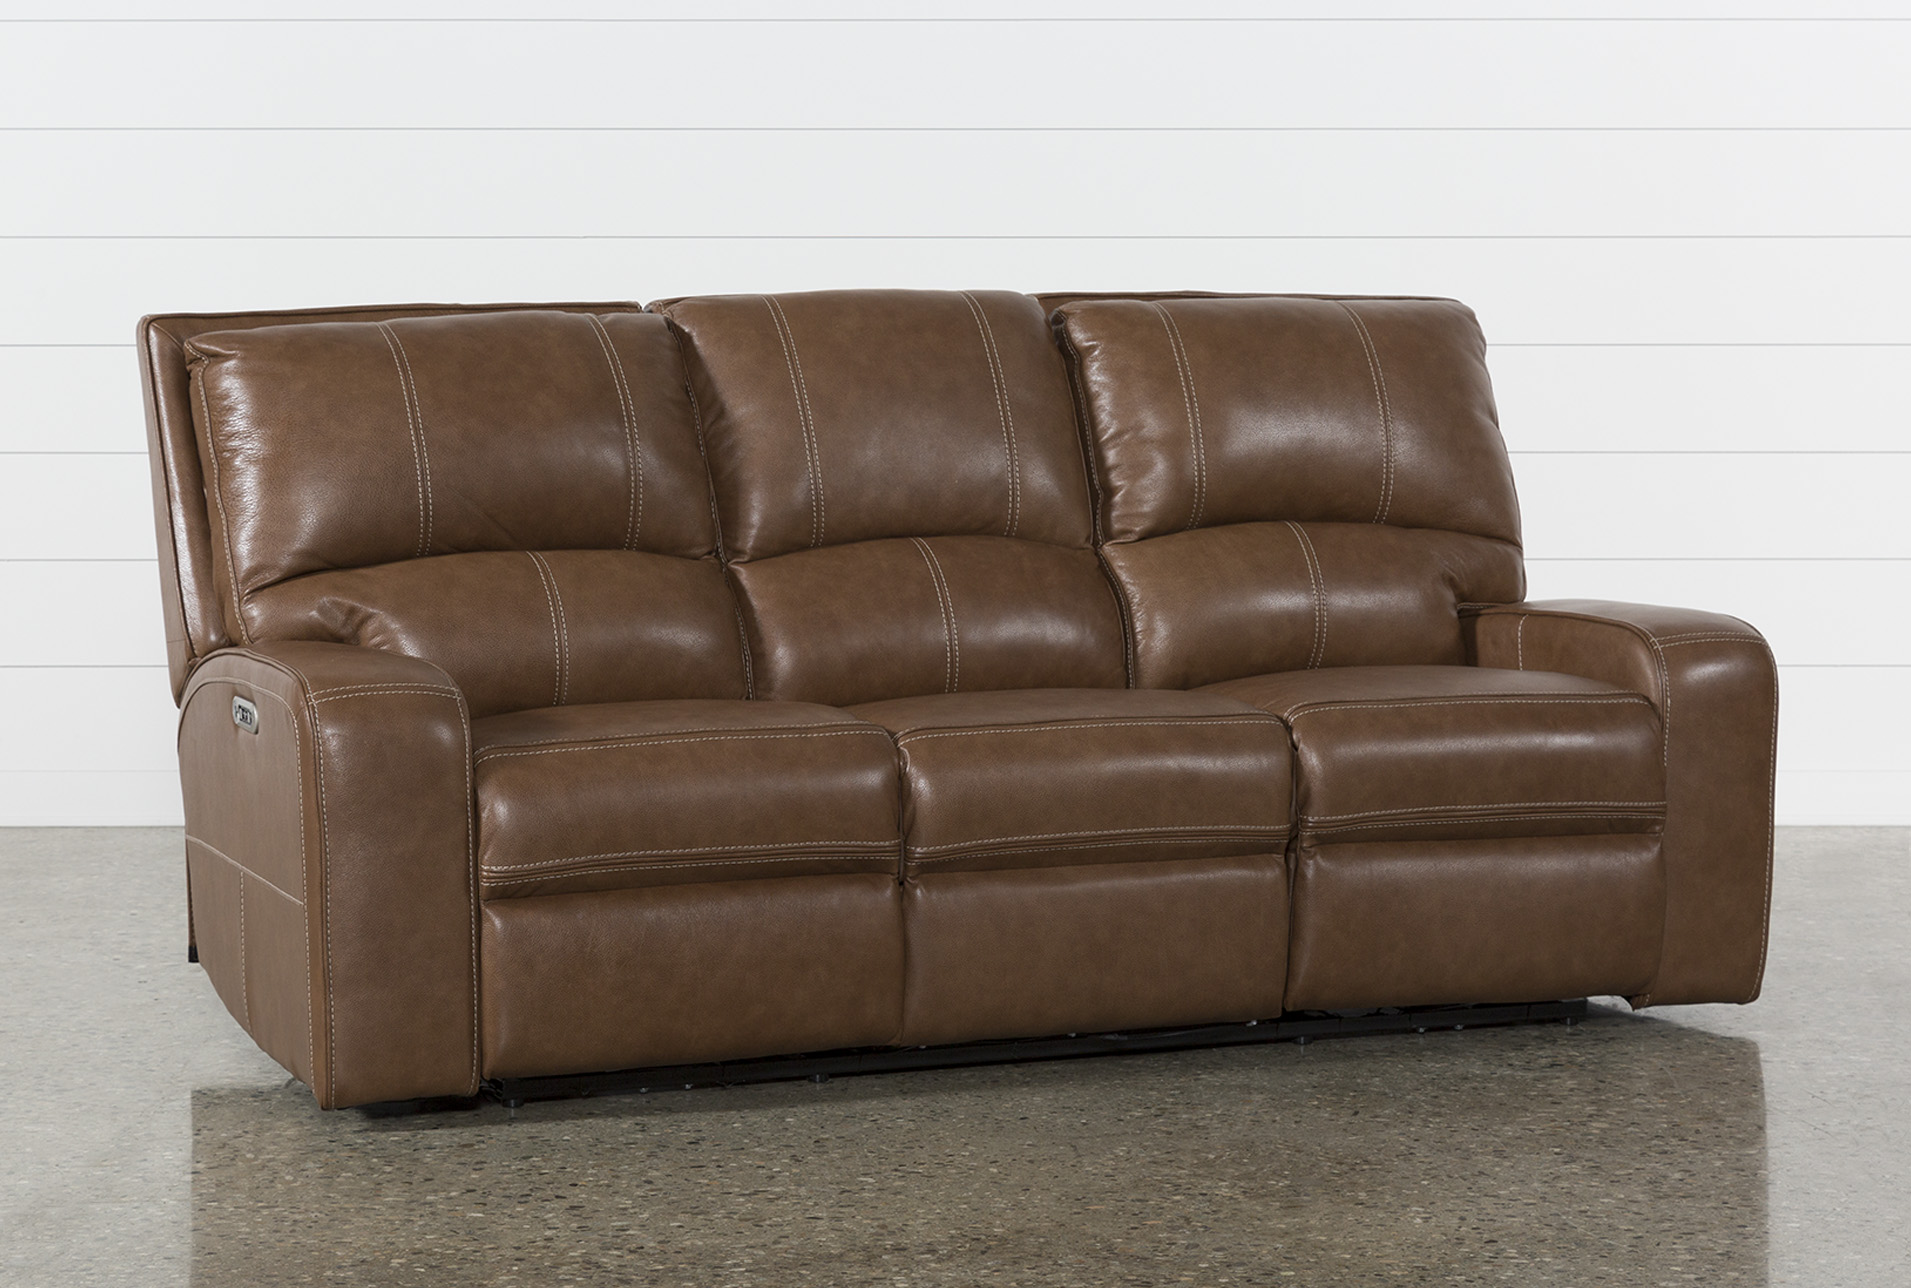 Clyde Saddle Leather Power Reclining Sofa W/Power Headrest U0026amp; Usb (Qty:  1) Has Been Successfully Added To Your Cart.